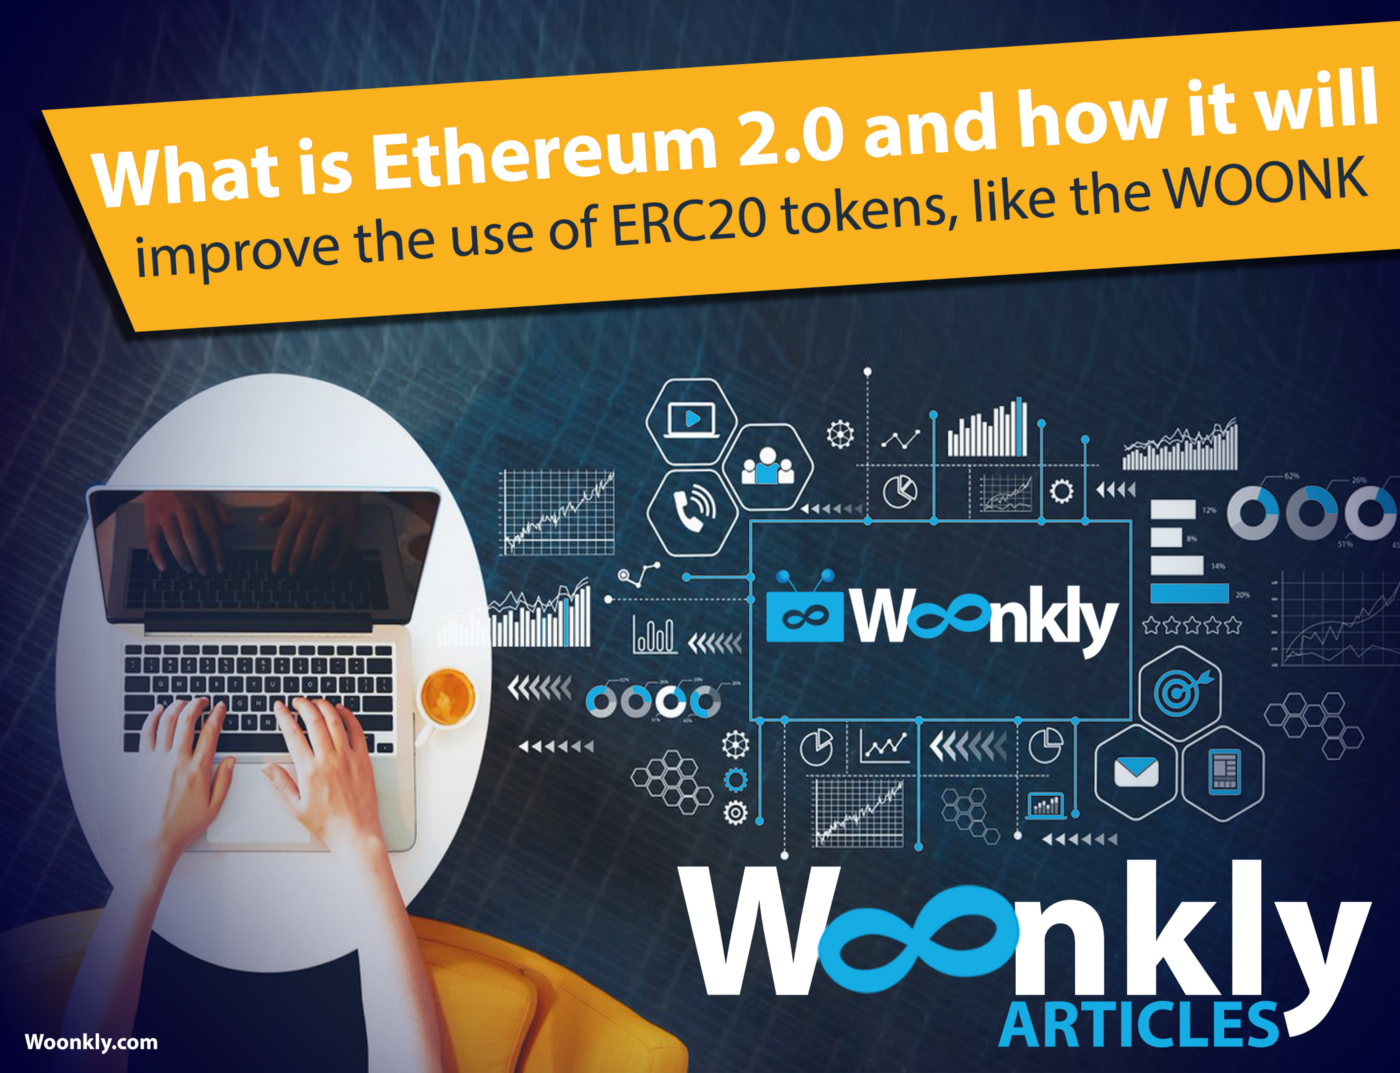 What is Ethereum 2.0 and how will it improve the use of ERC20 tokens, like the WOONK?